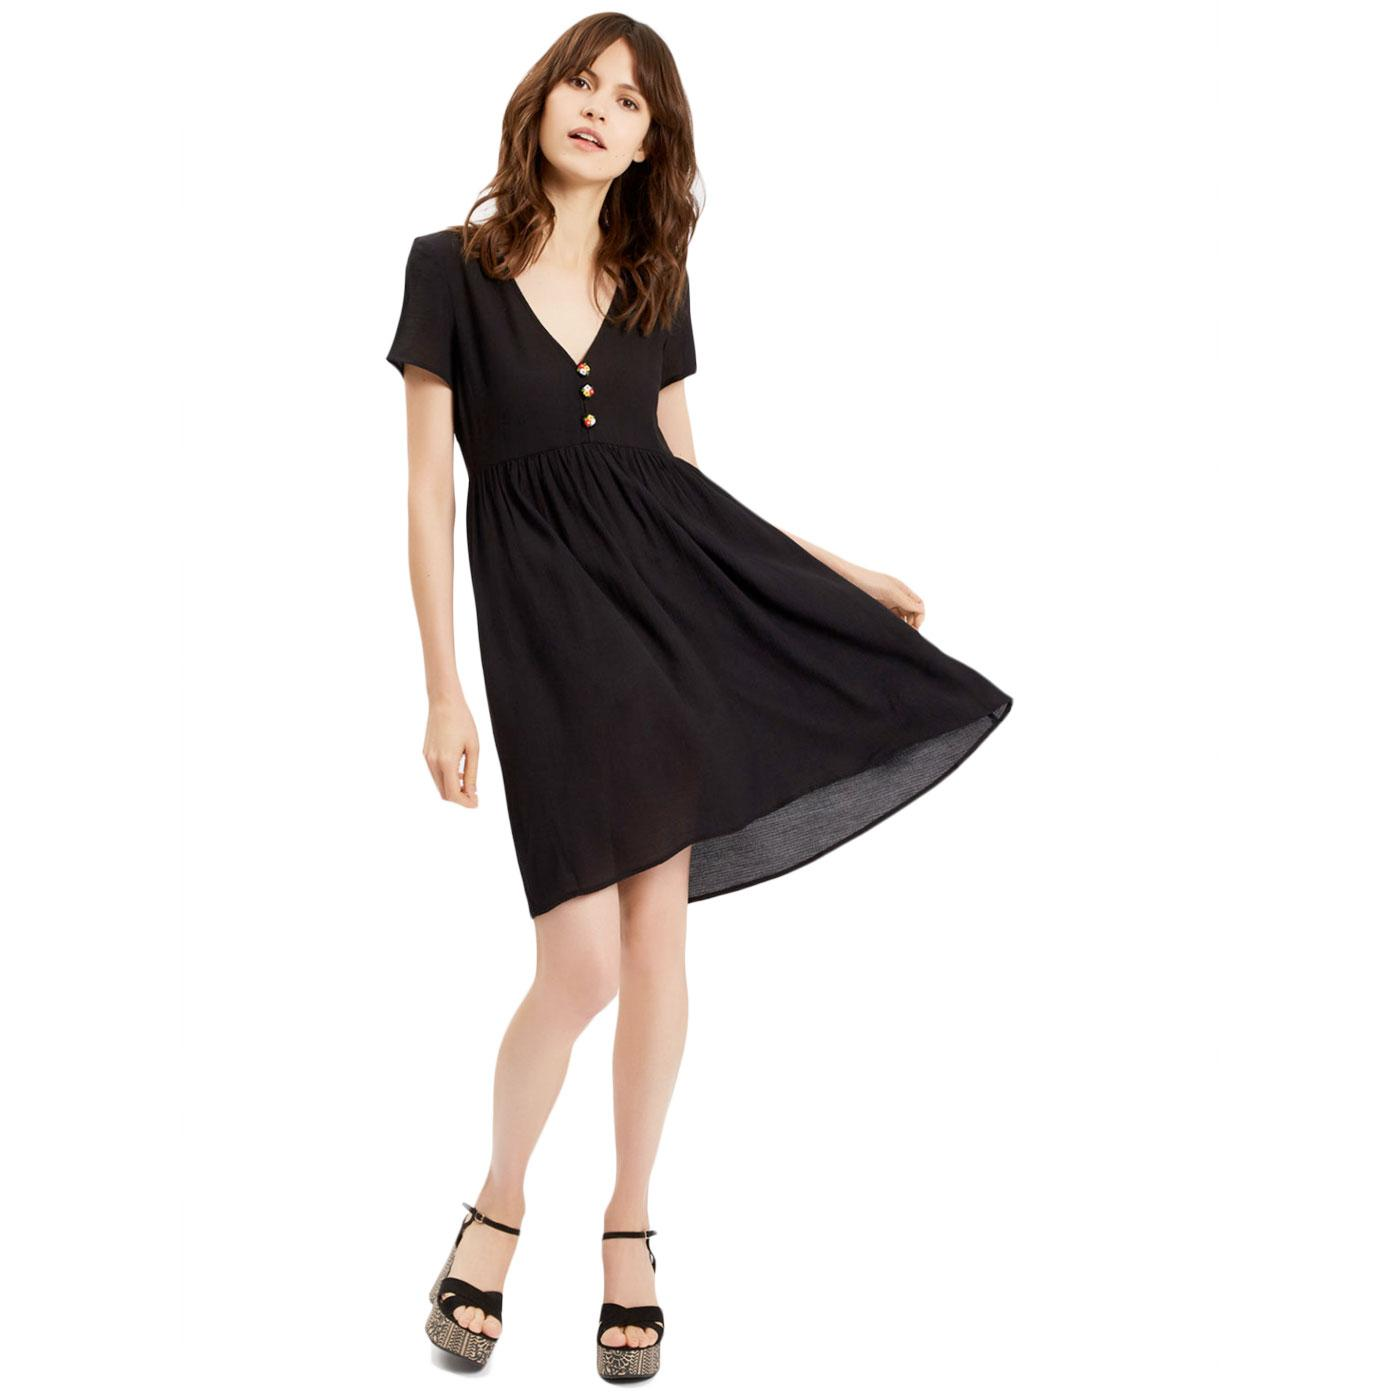 Wanderlust TRAFFIC PEOPLE Retro Little Black Dress